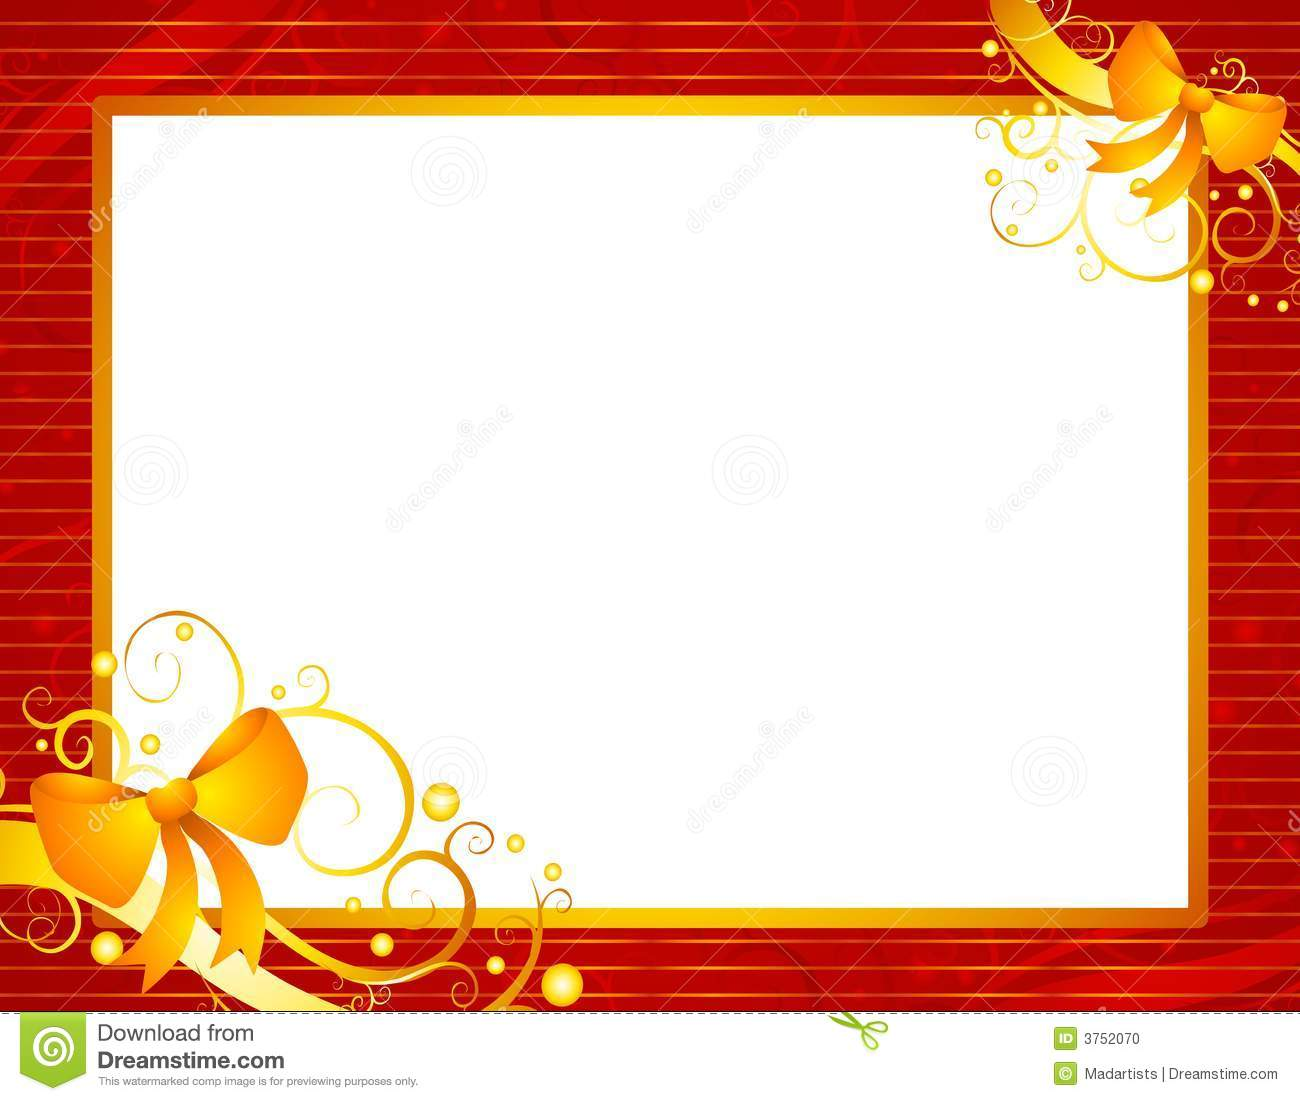 Clip Art Illustration Featuring A Red Striped Frame With Gold